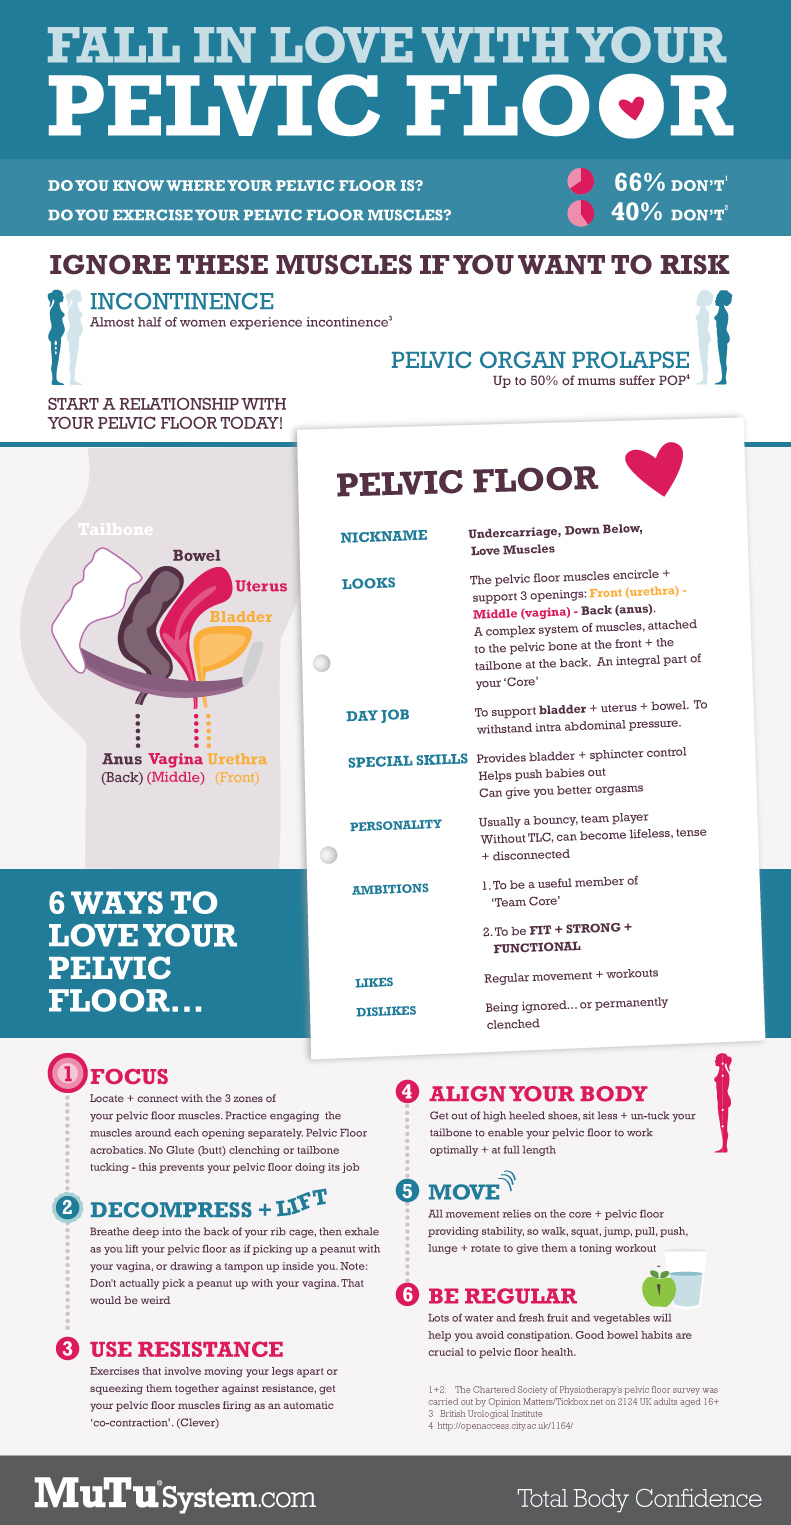 Fall in love with you pelvic floor